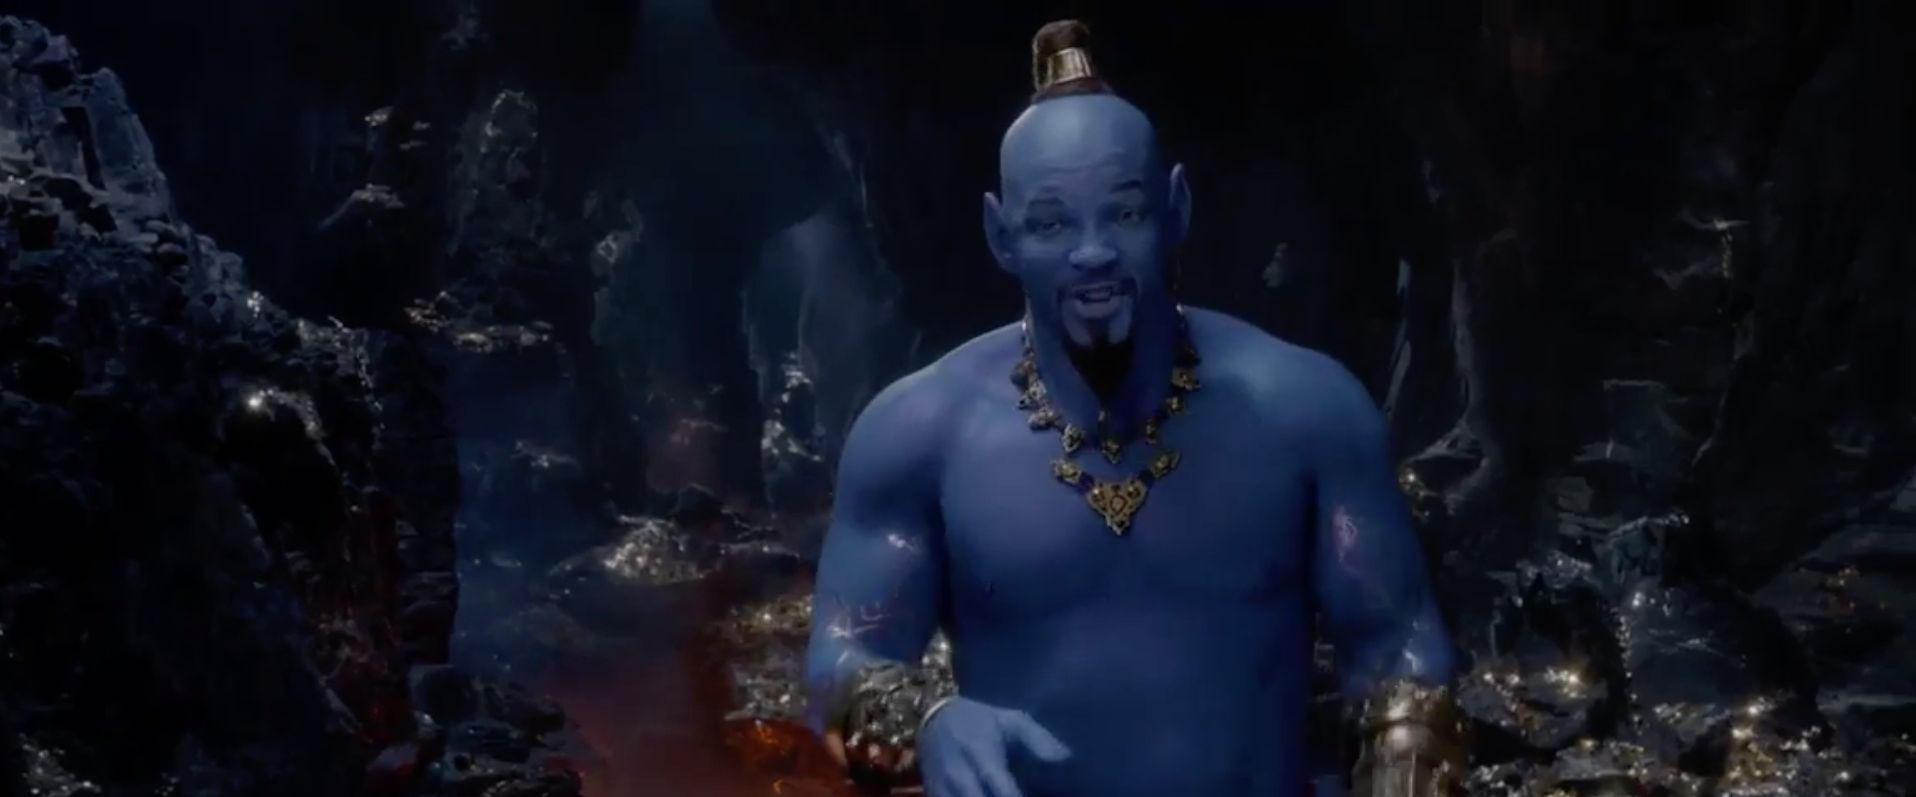 The Genie No One Wished For – Will Smith's Aladdin Role Gives Fans The